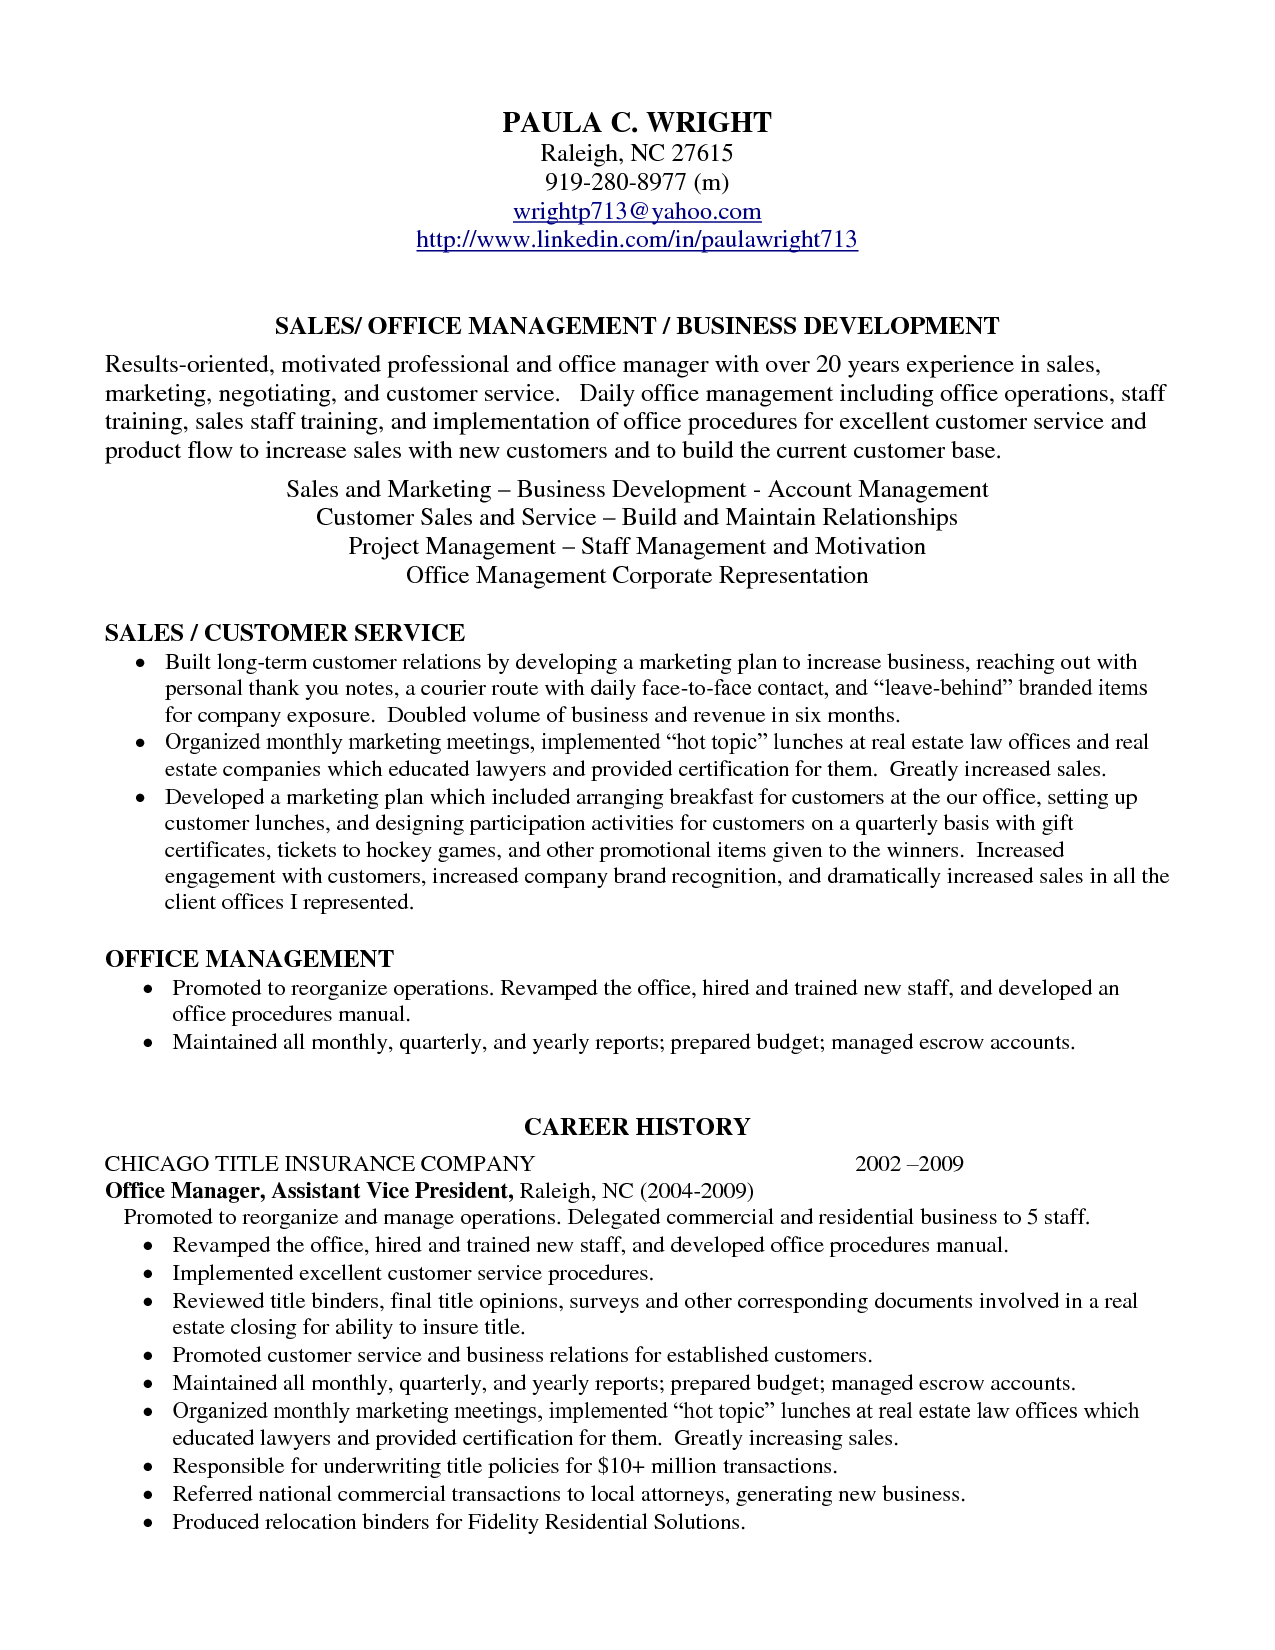 Professional Profile Resume Examples Resume Professional Profile - Sample profile for resume